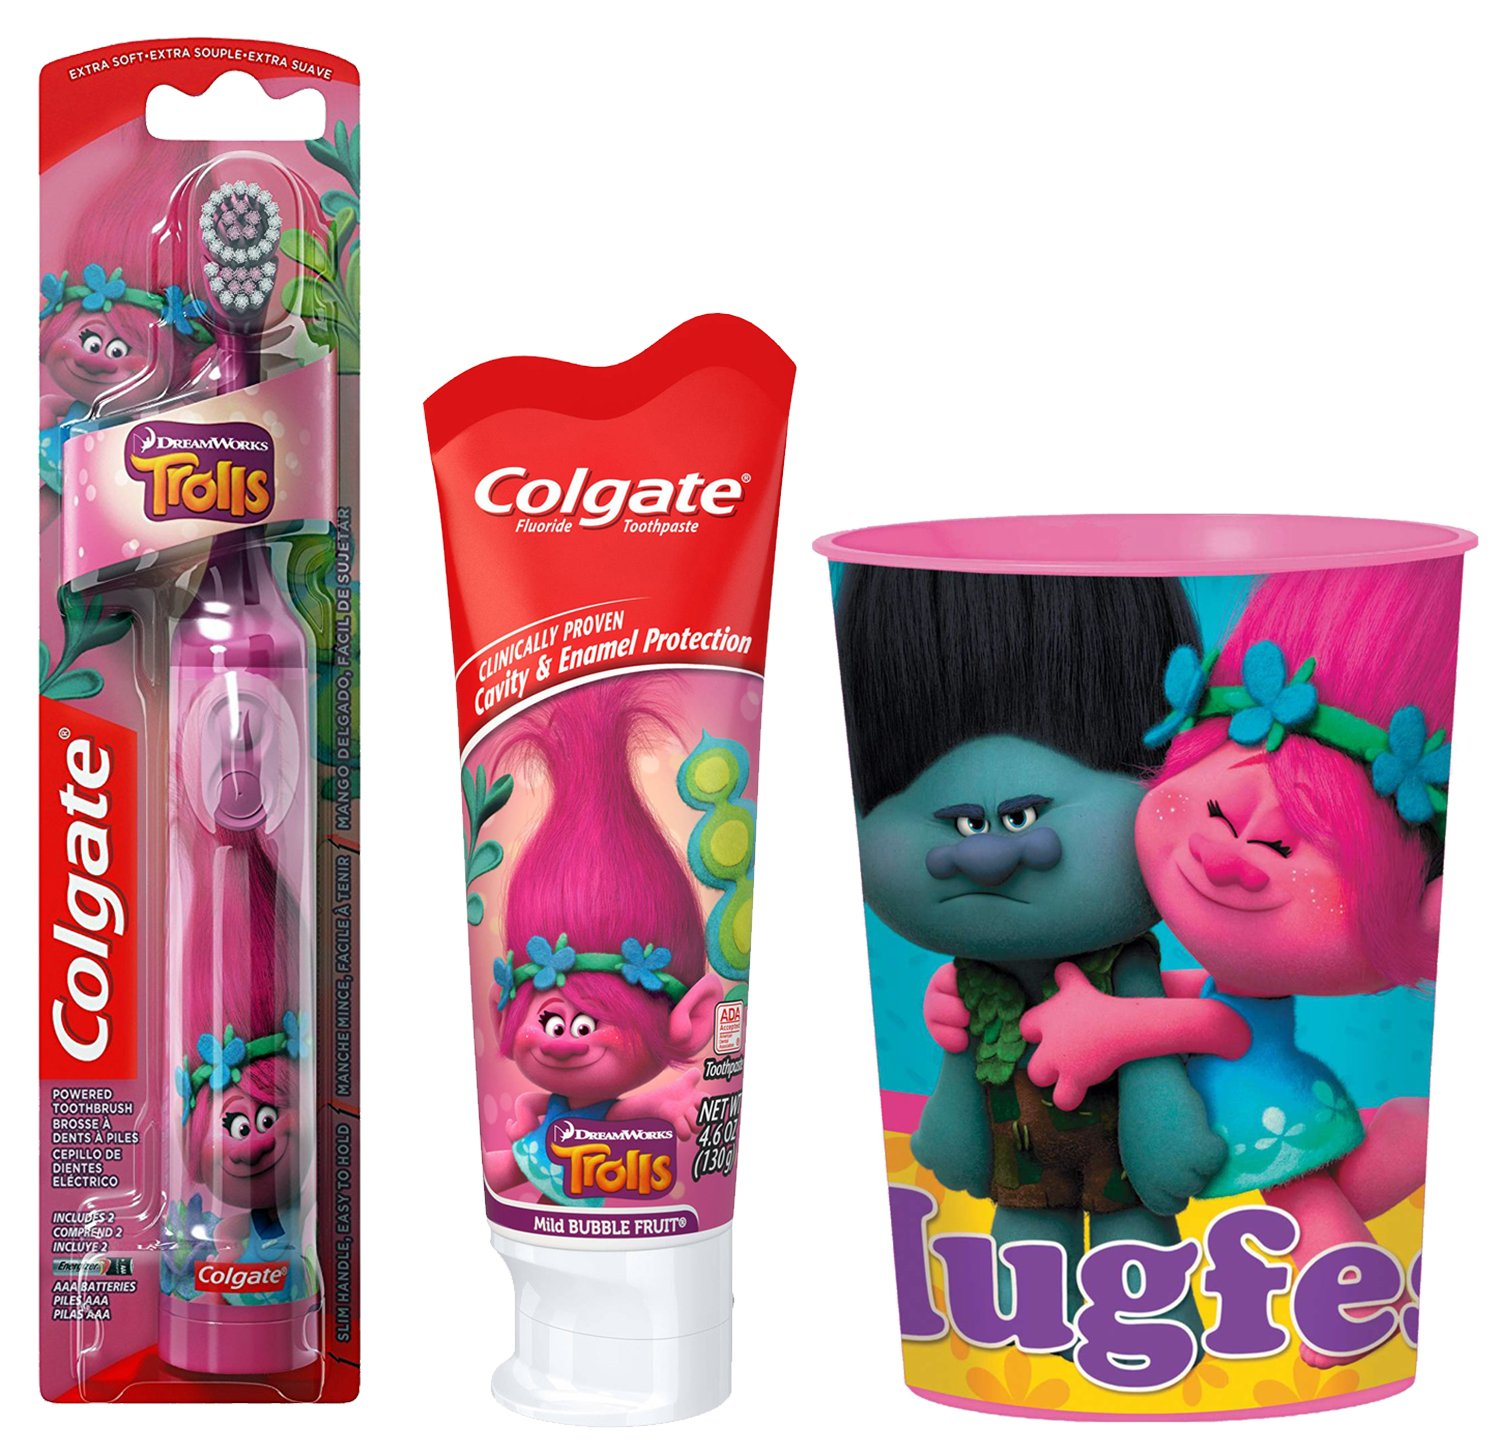 Trolls Poppy Kids Toothbrush Bundle: 3 Items - Powered Toothbrush, Mild Bubble Fruit Toothpaste, Kids' Rinse Cup